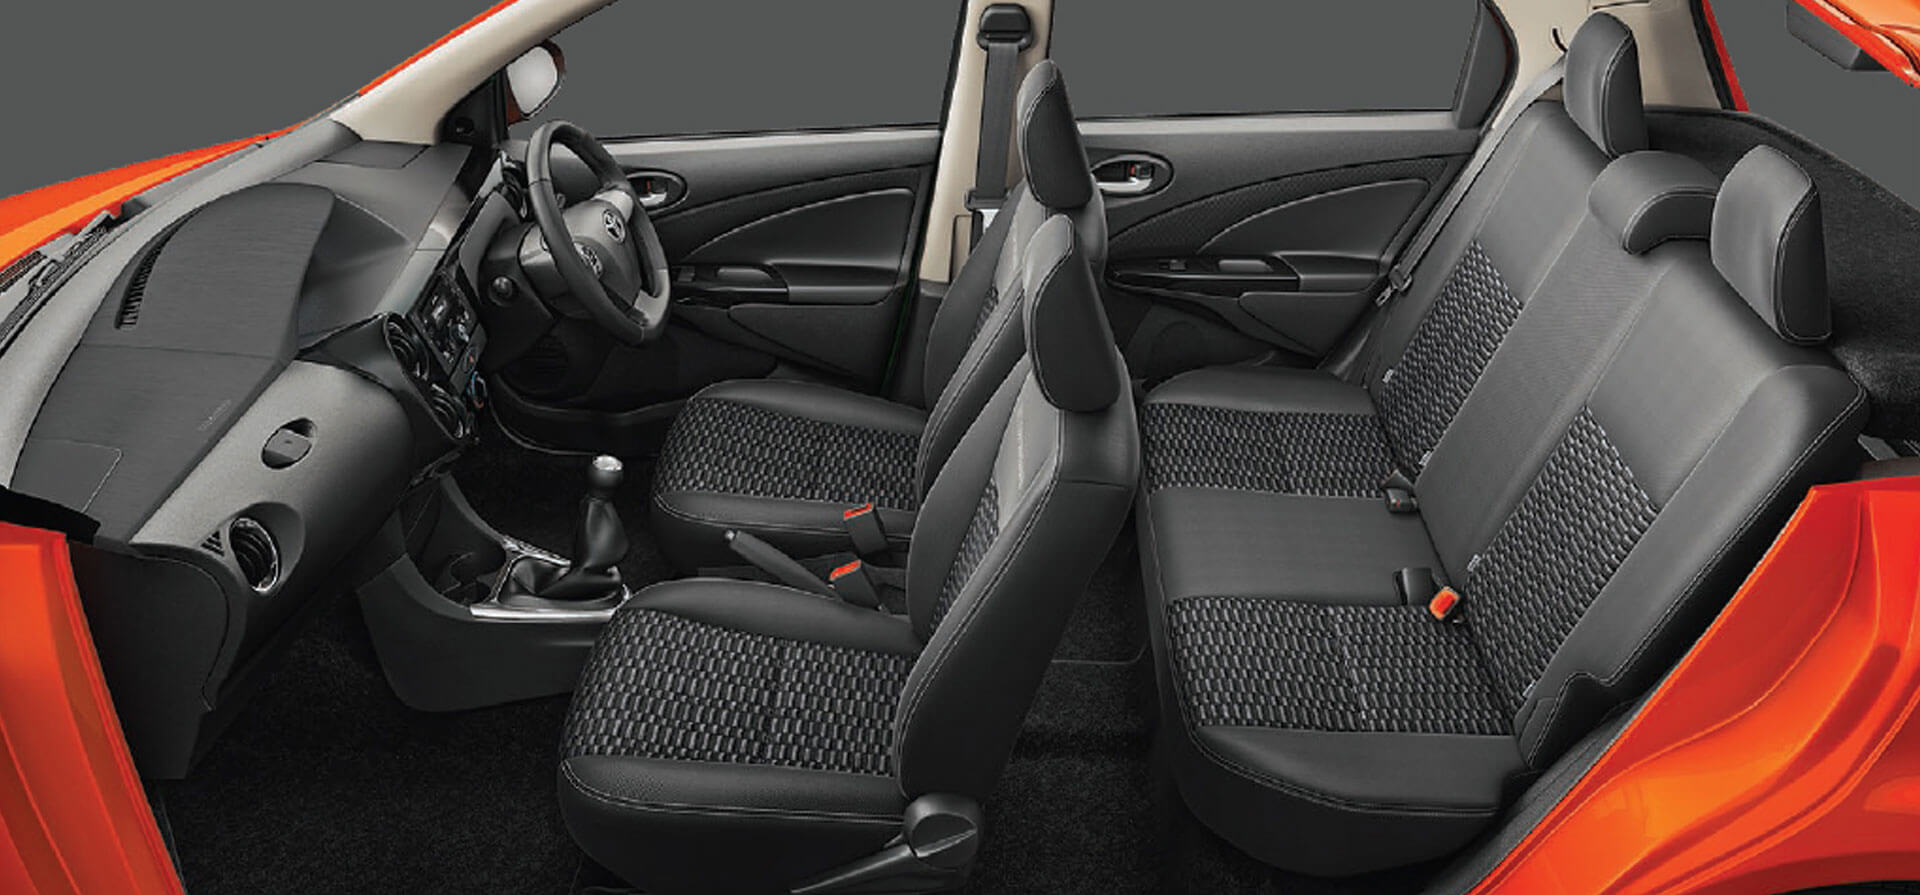 Ergonomic Seats with Rear-Center Headrest